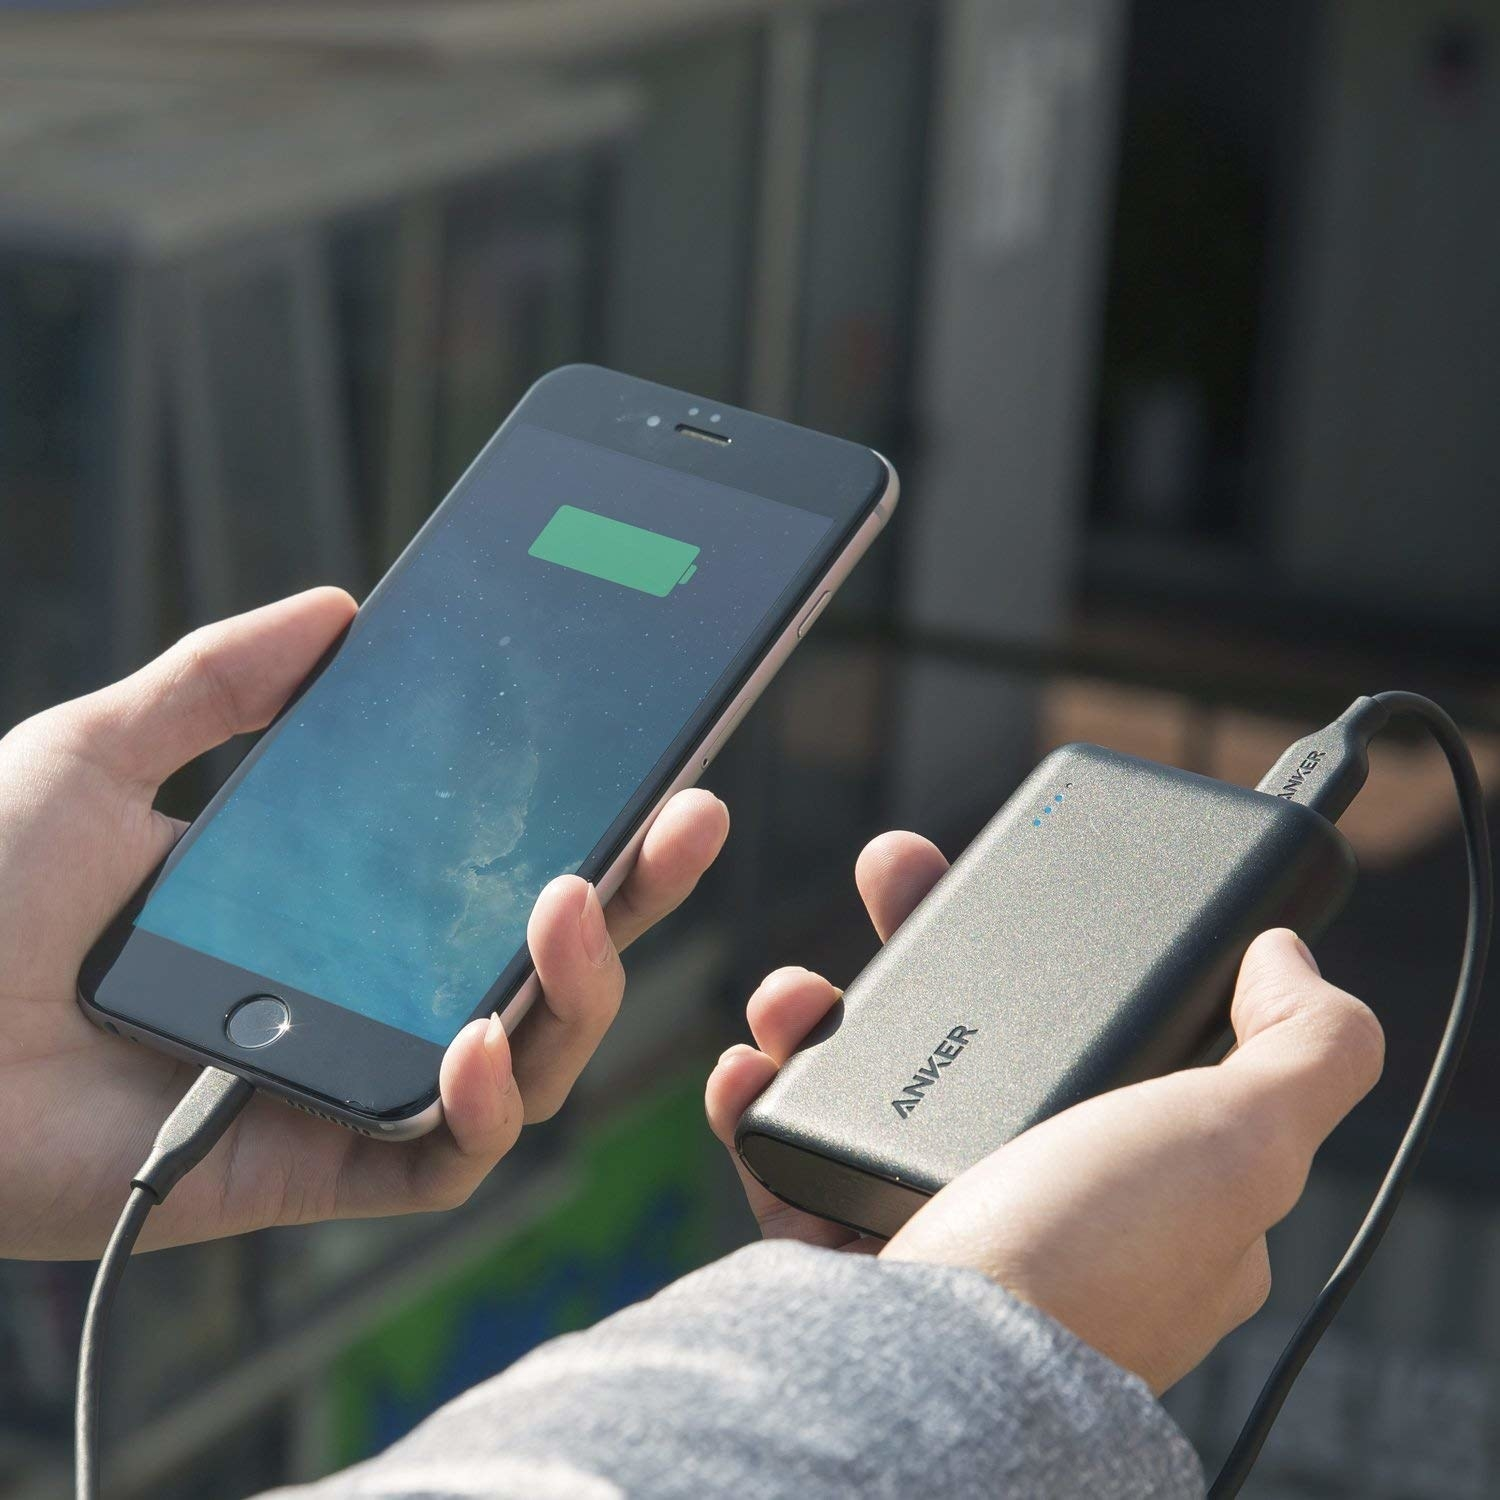 the anker charging bank charging a phone